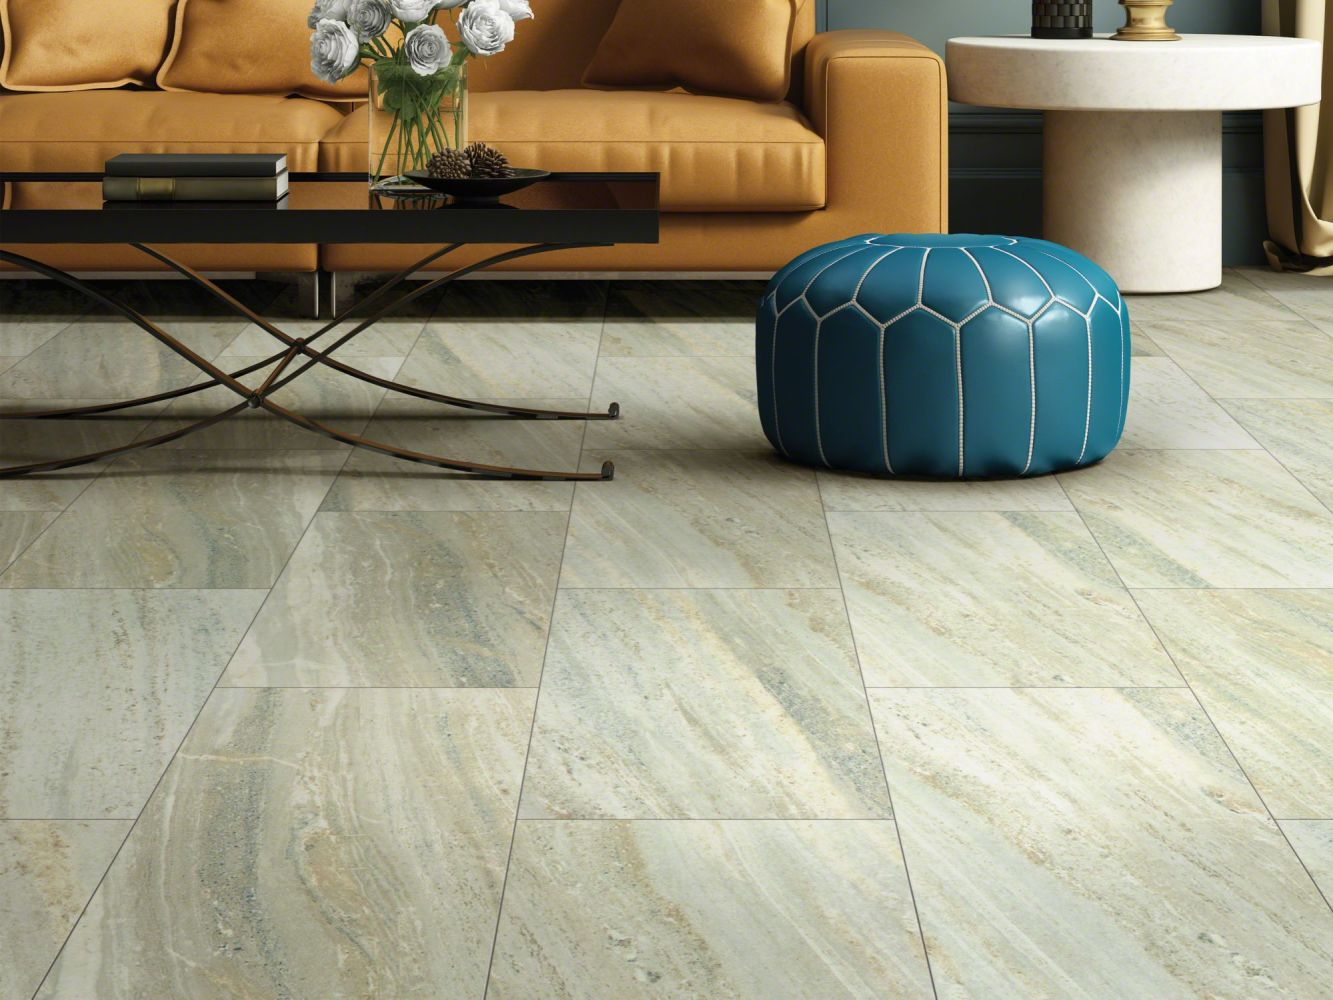 Shaw Floors Resilient Residential Intrepid Tile Plus Boulder 00585_2026V